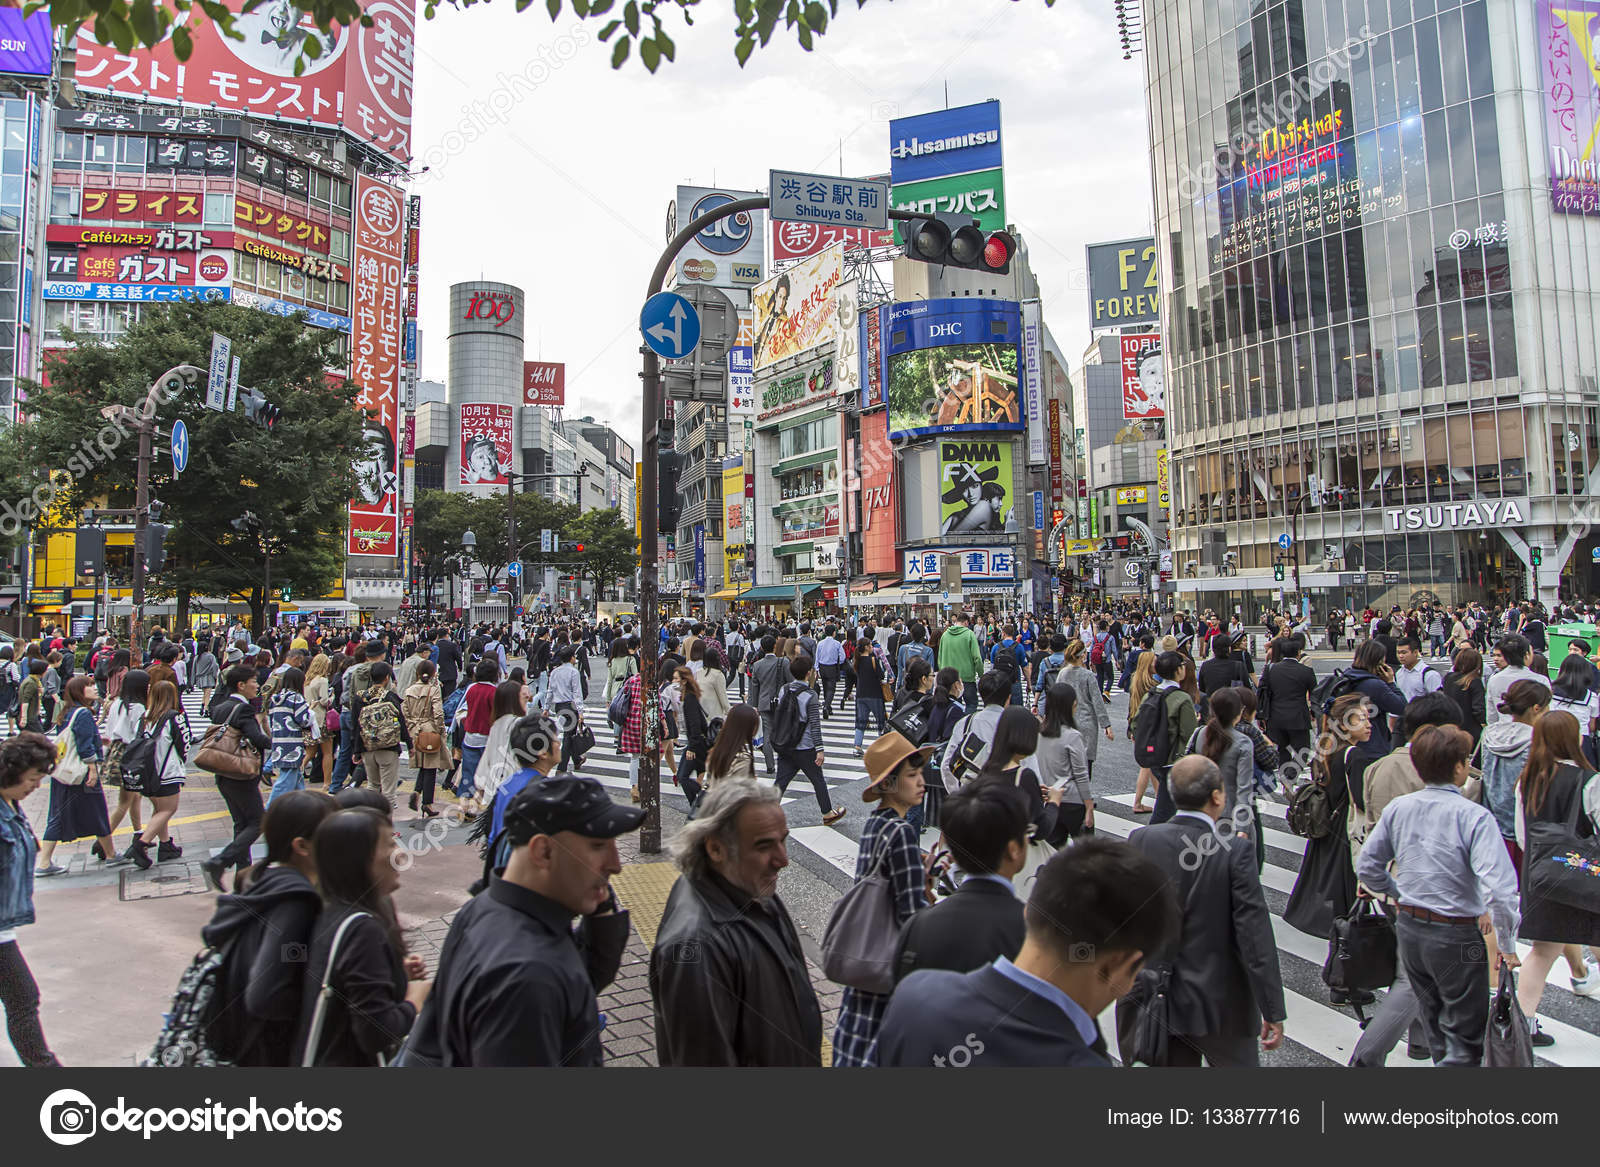 People on the street in Shibuya – Stock Editorial Photo